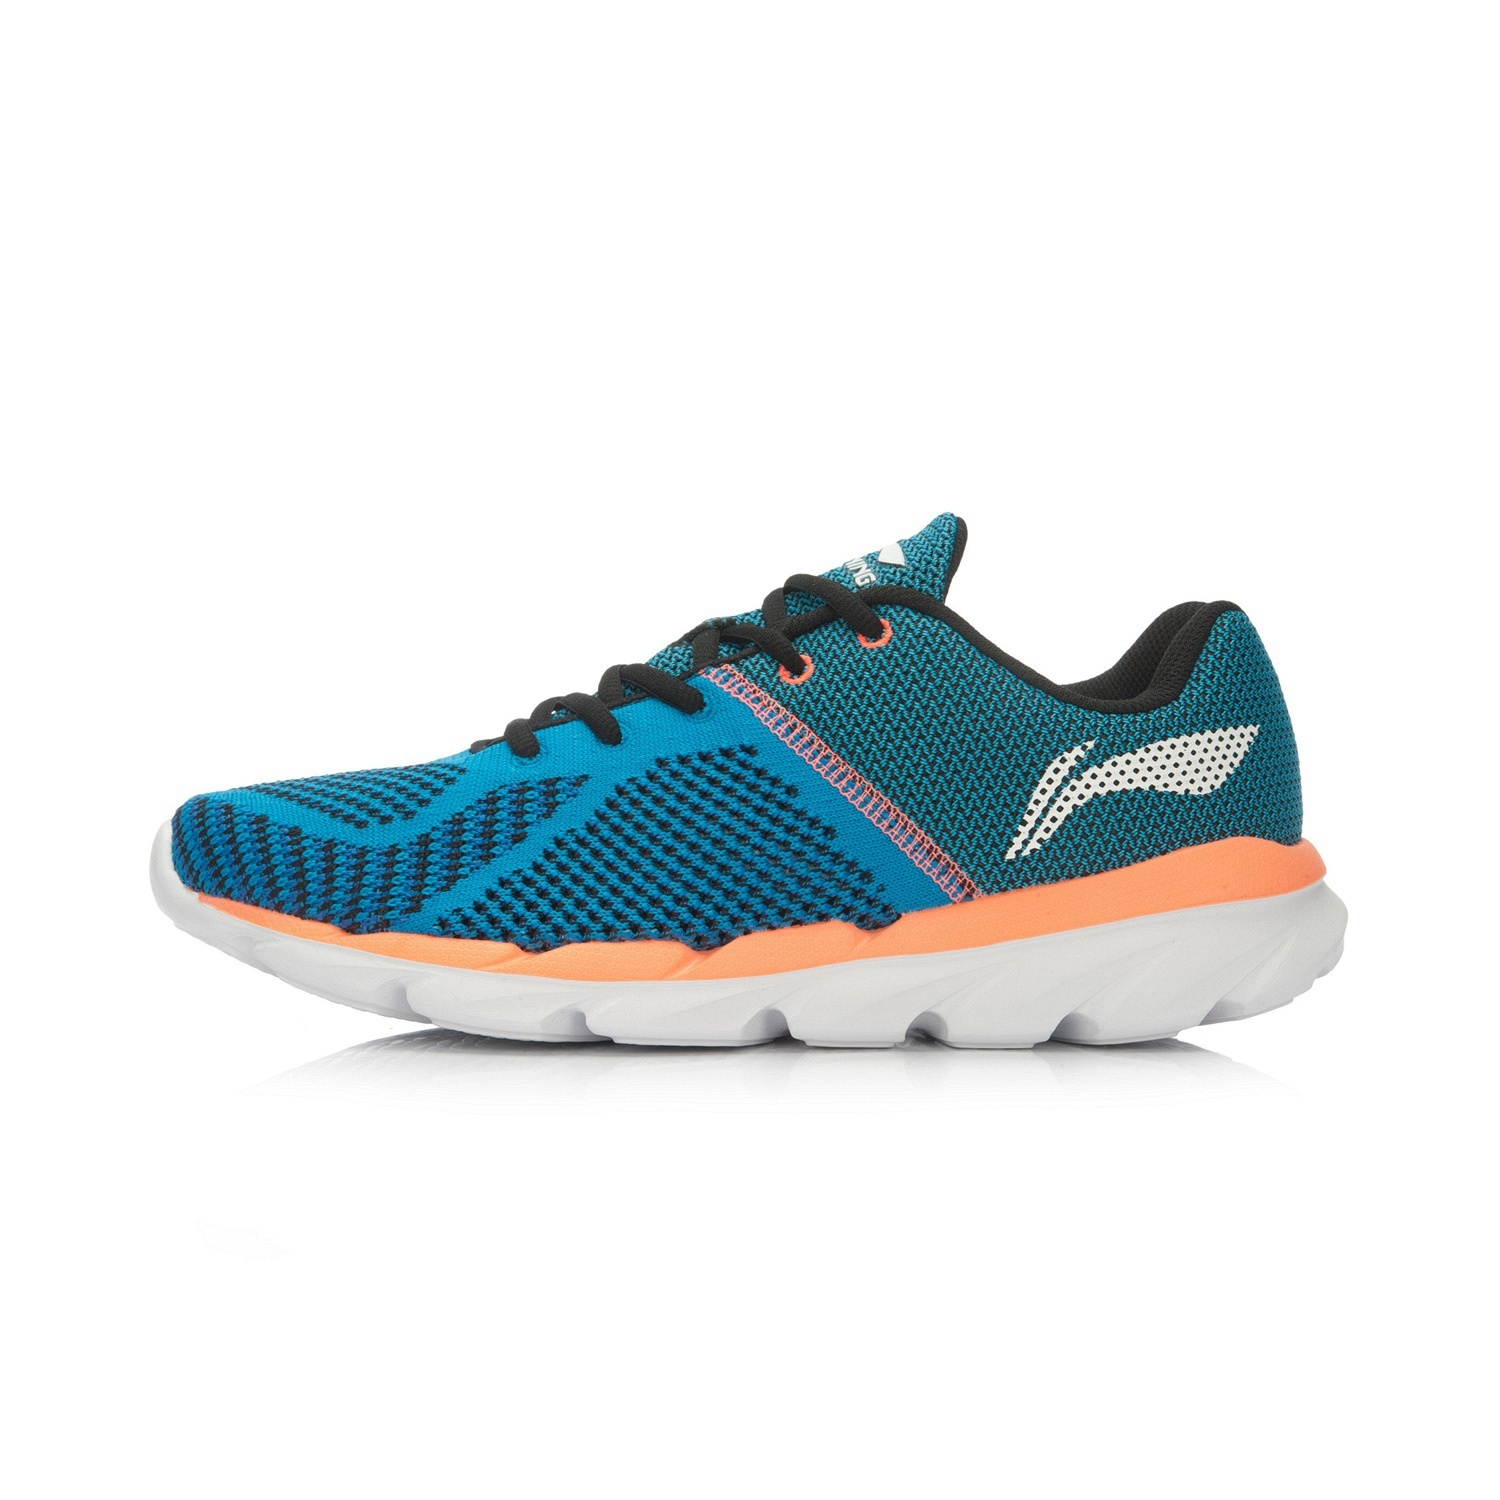 Li Ning Winter New Style Men S Damping Running Shoes Beijing Blue